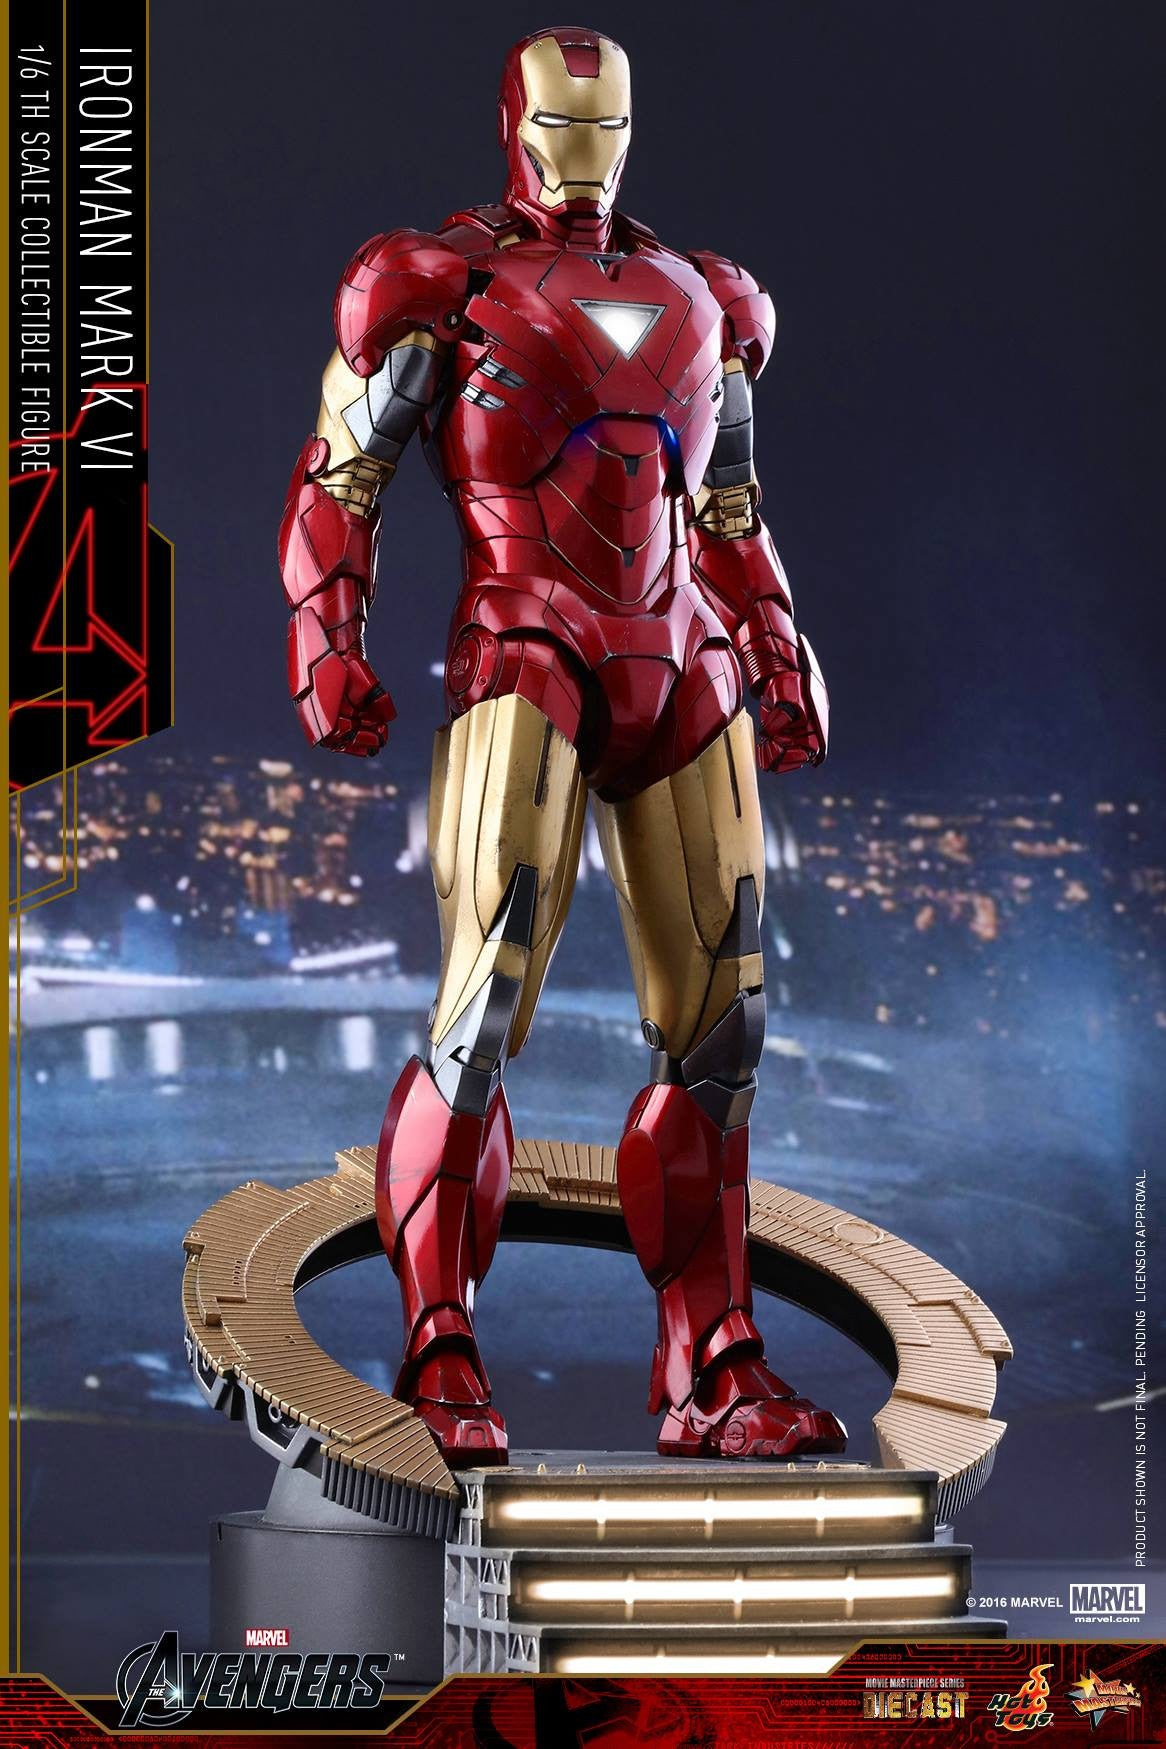 Hot Toys - MMS378D17 - The Avengers - Iron Man Mark VI (DIECAST) (Normal Edition) - Marvelous Toys - 10